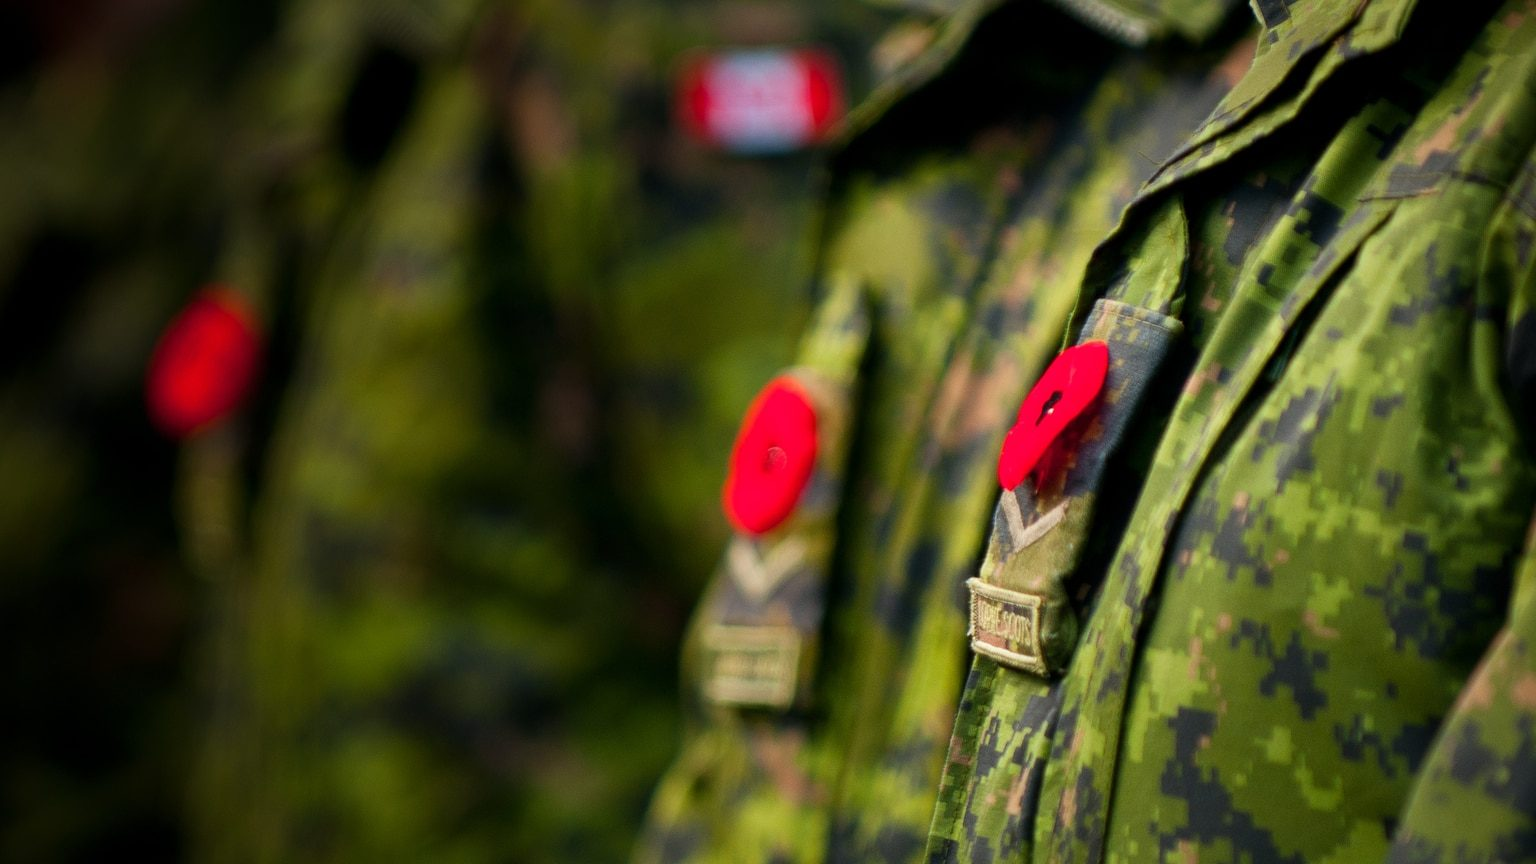 Closeup of poppies pinned to military uniforms